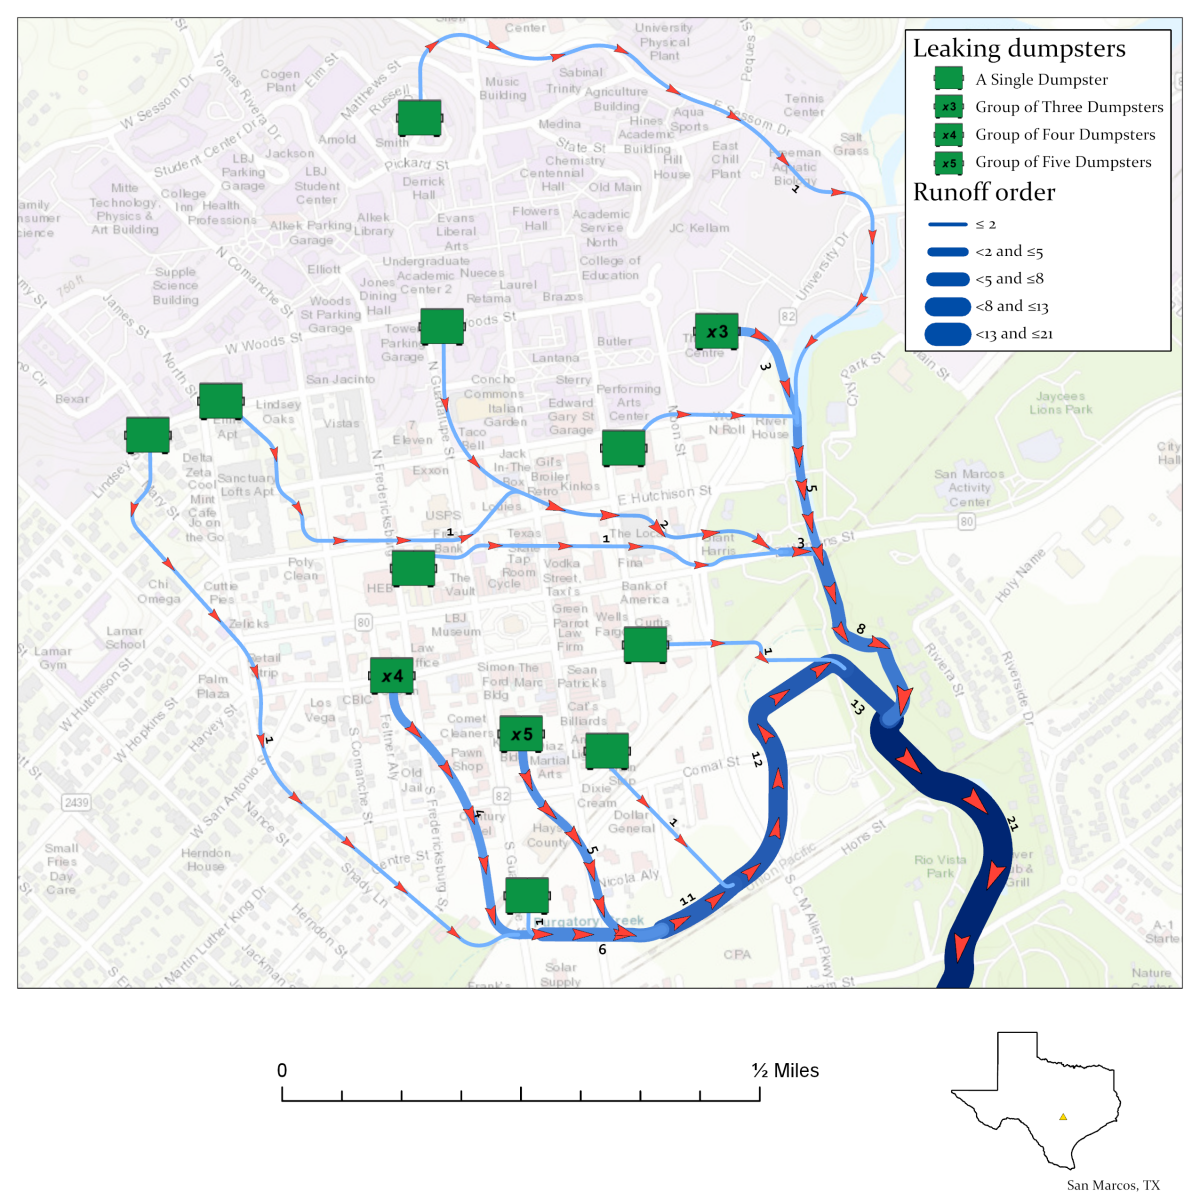 Estimated Paths of Runoff Originating from Leaking Dumpsters